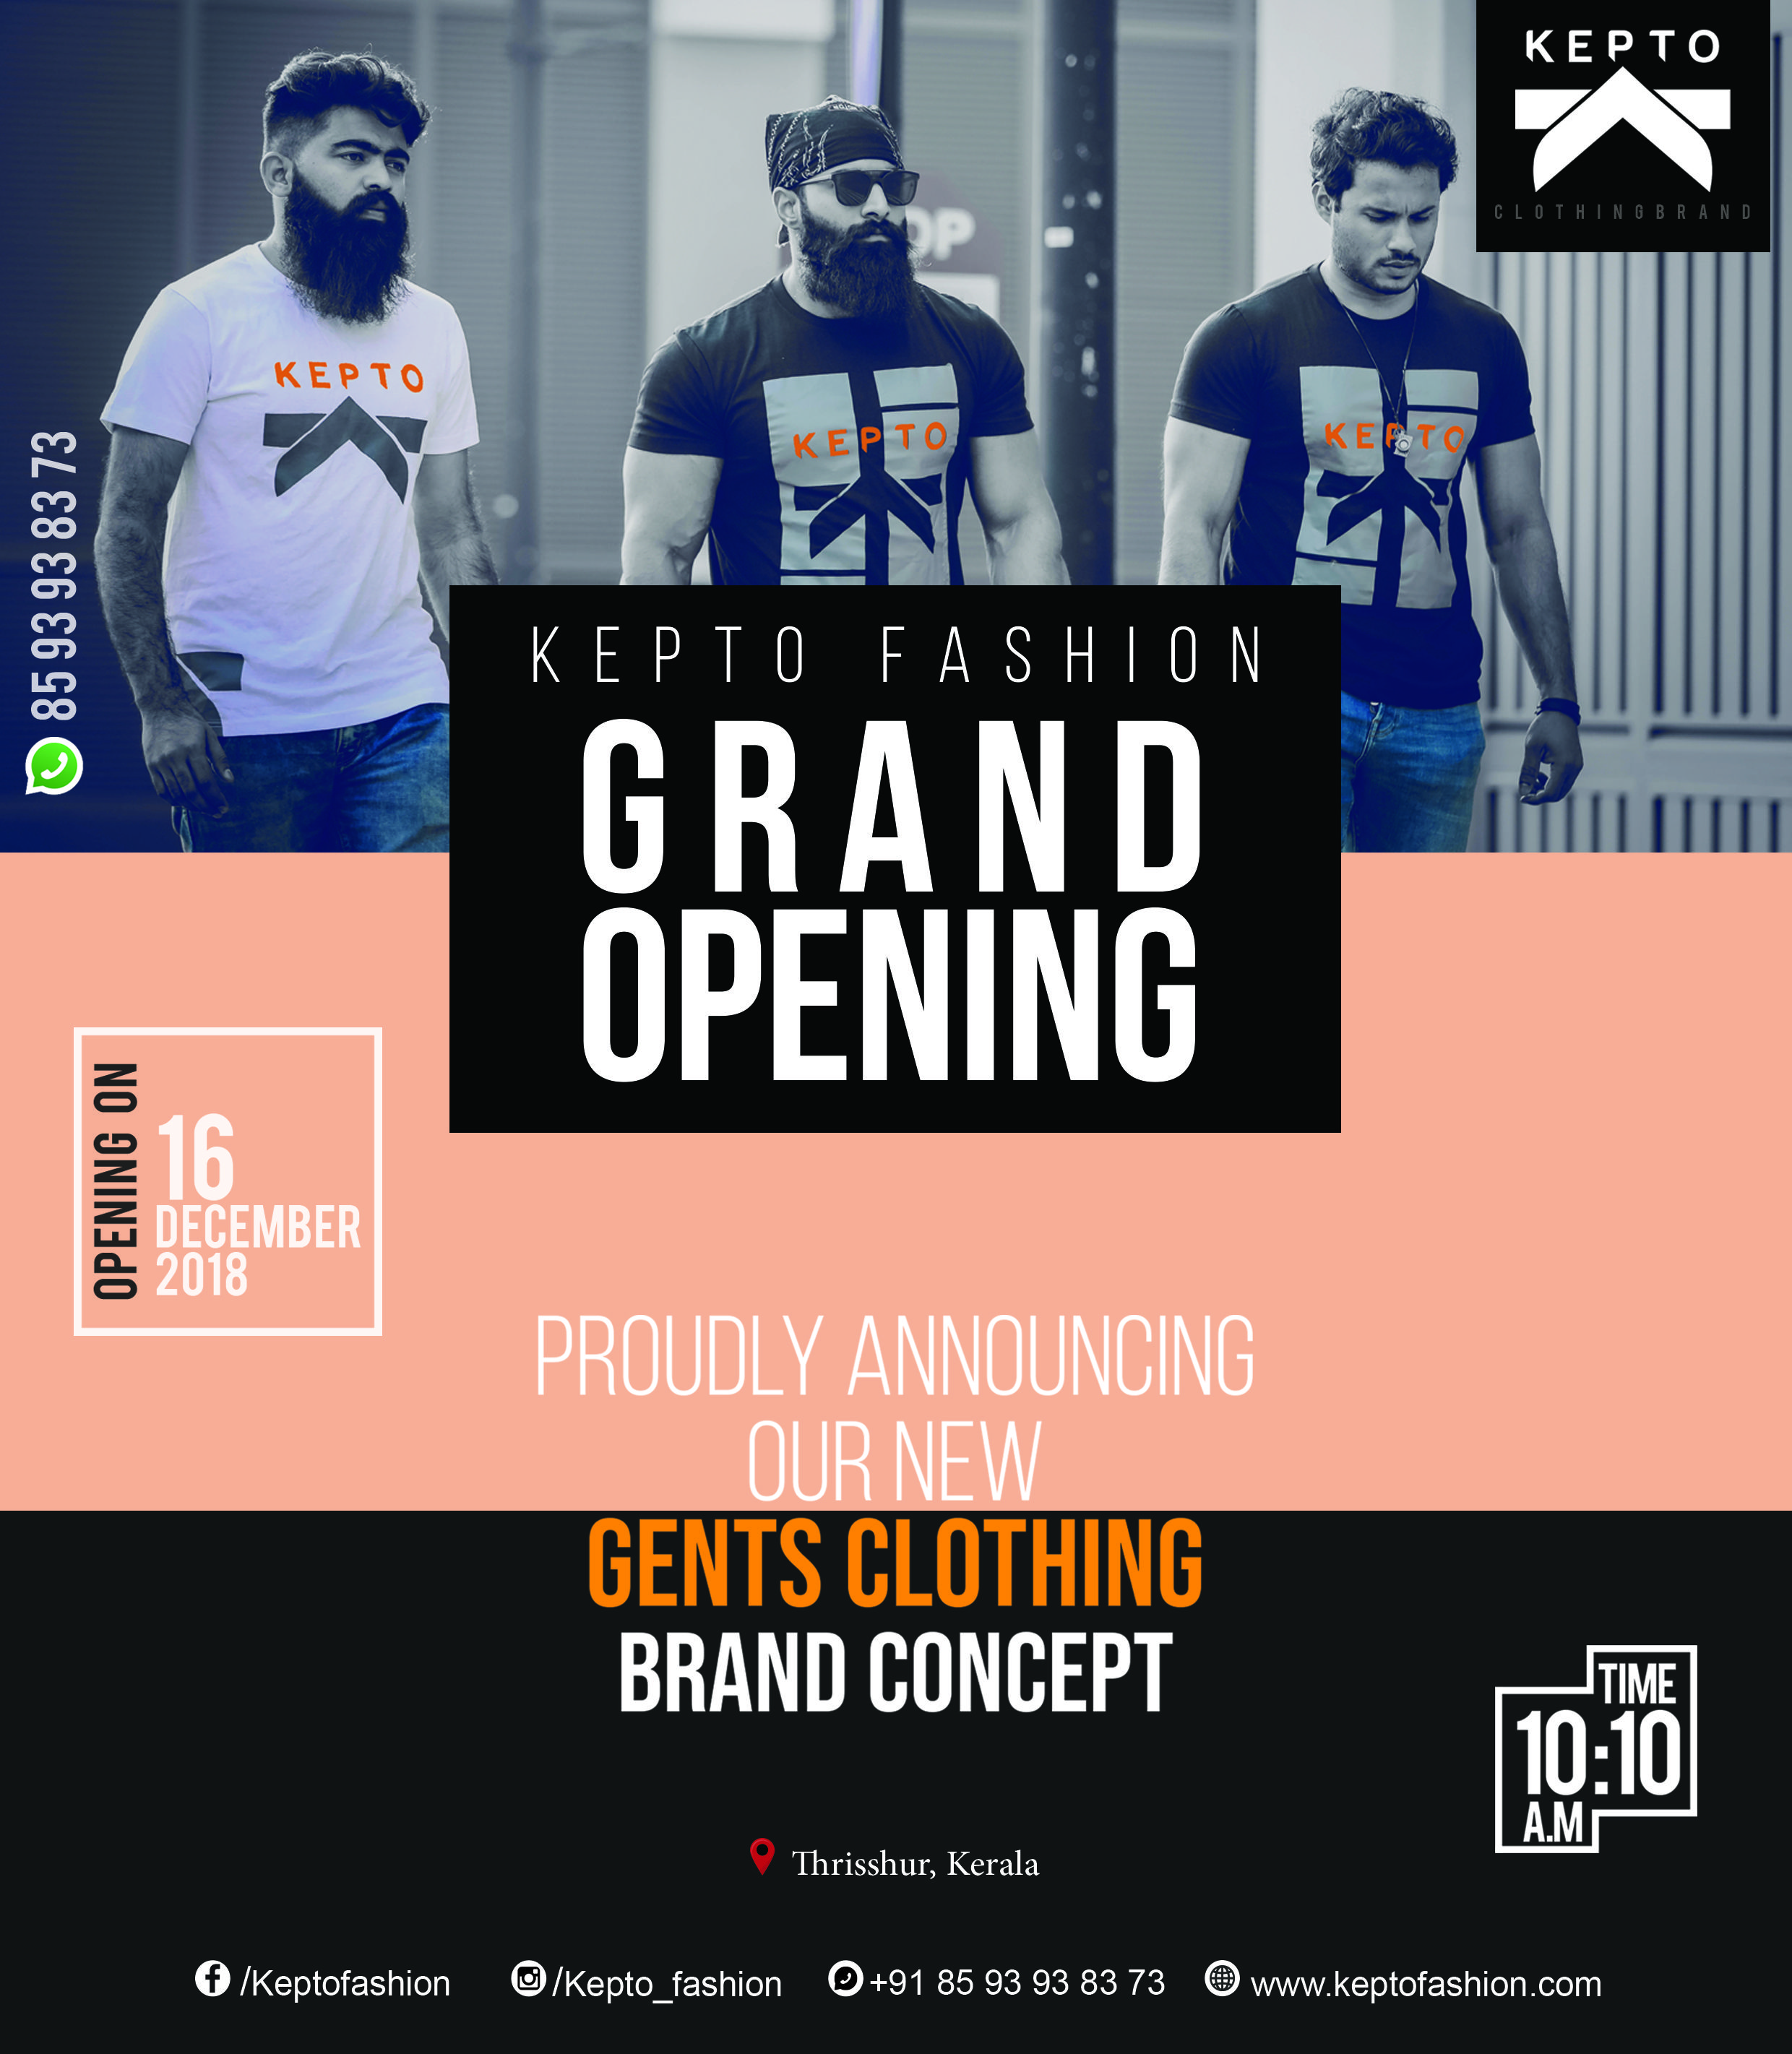 KEPTO CLOTHING BRAND GRAND OPENING POSTER SOXIAL MEDIA ...